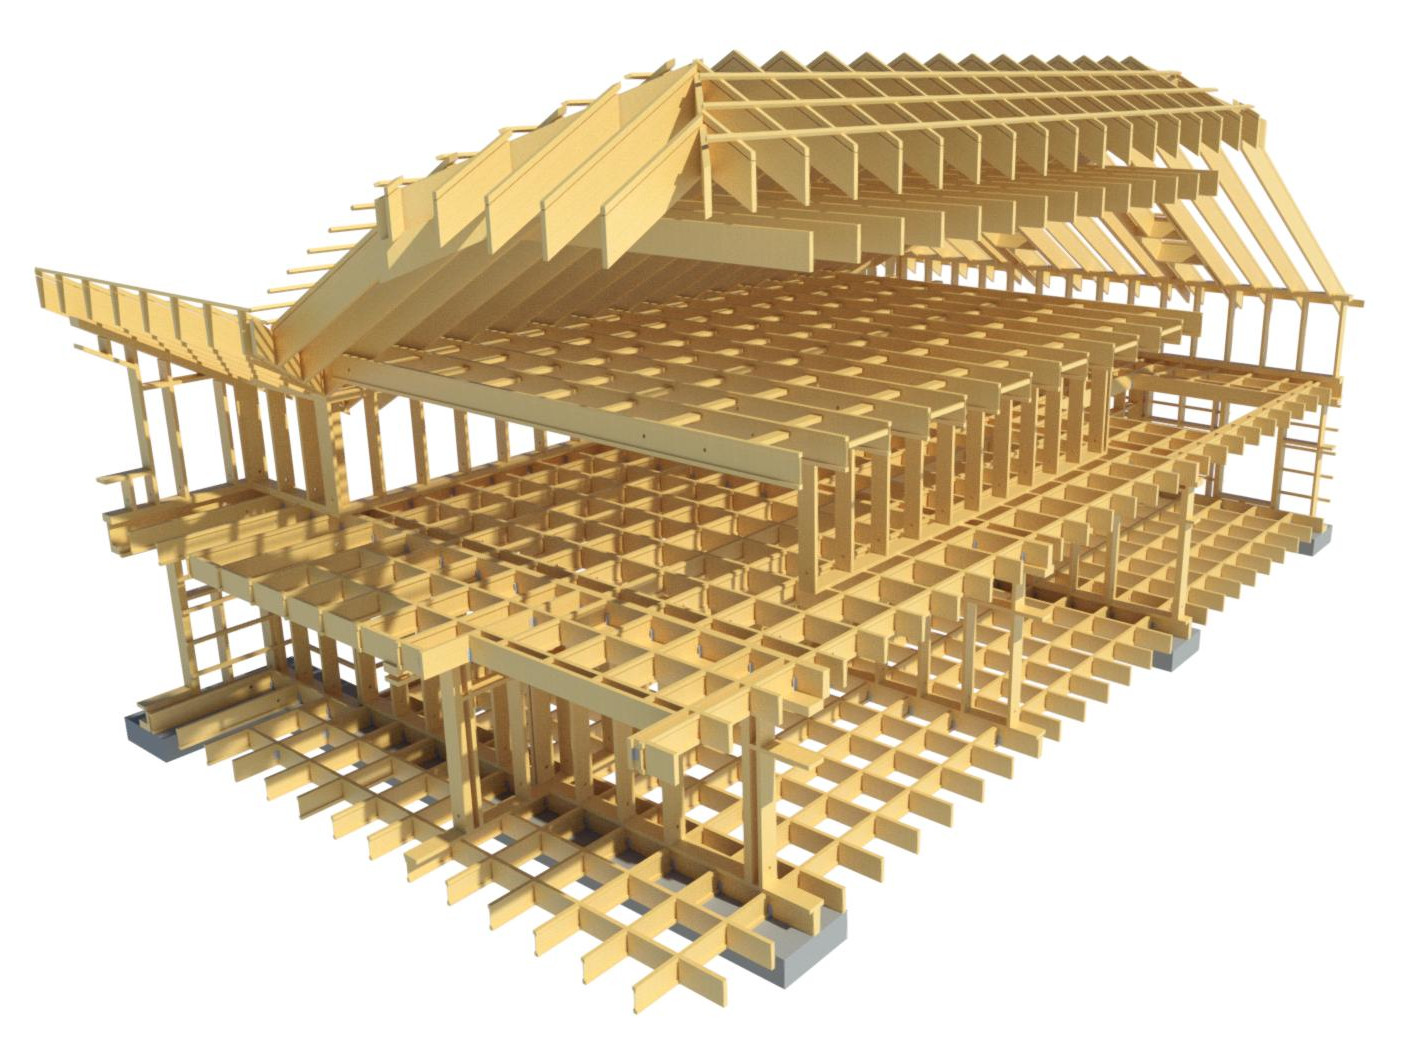 timber framed floor and roof modeled in Revit using AGACAD Wood Framing tools